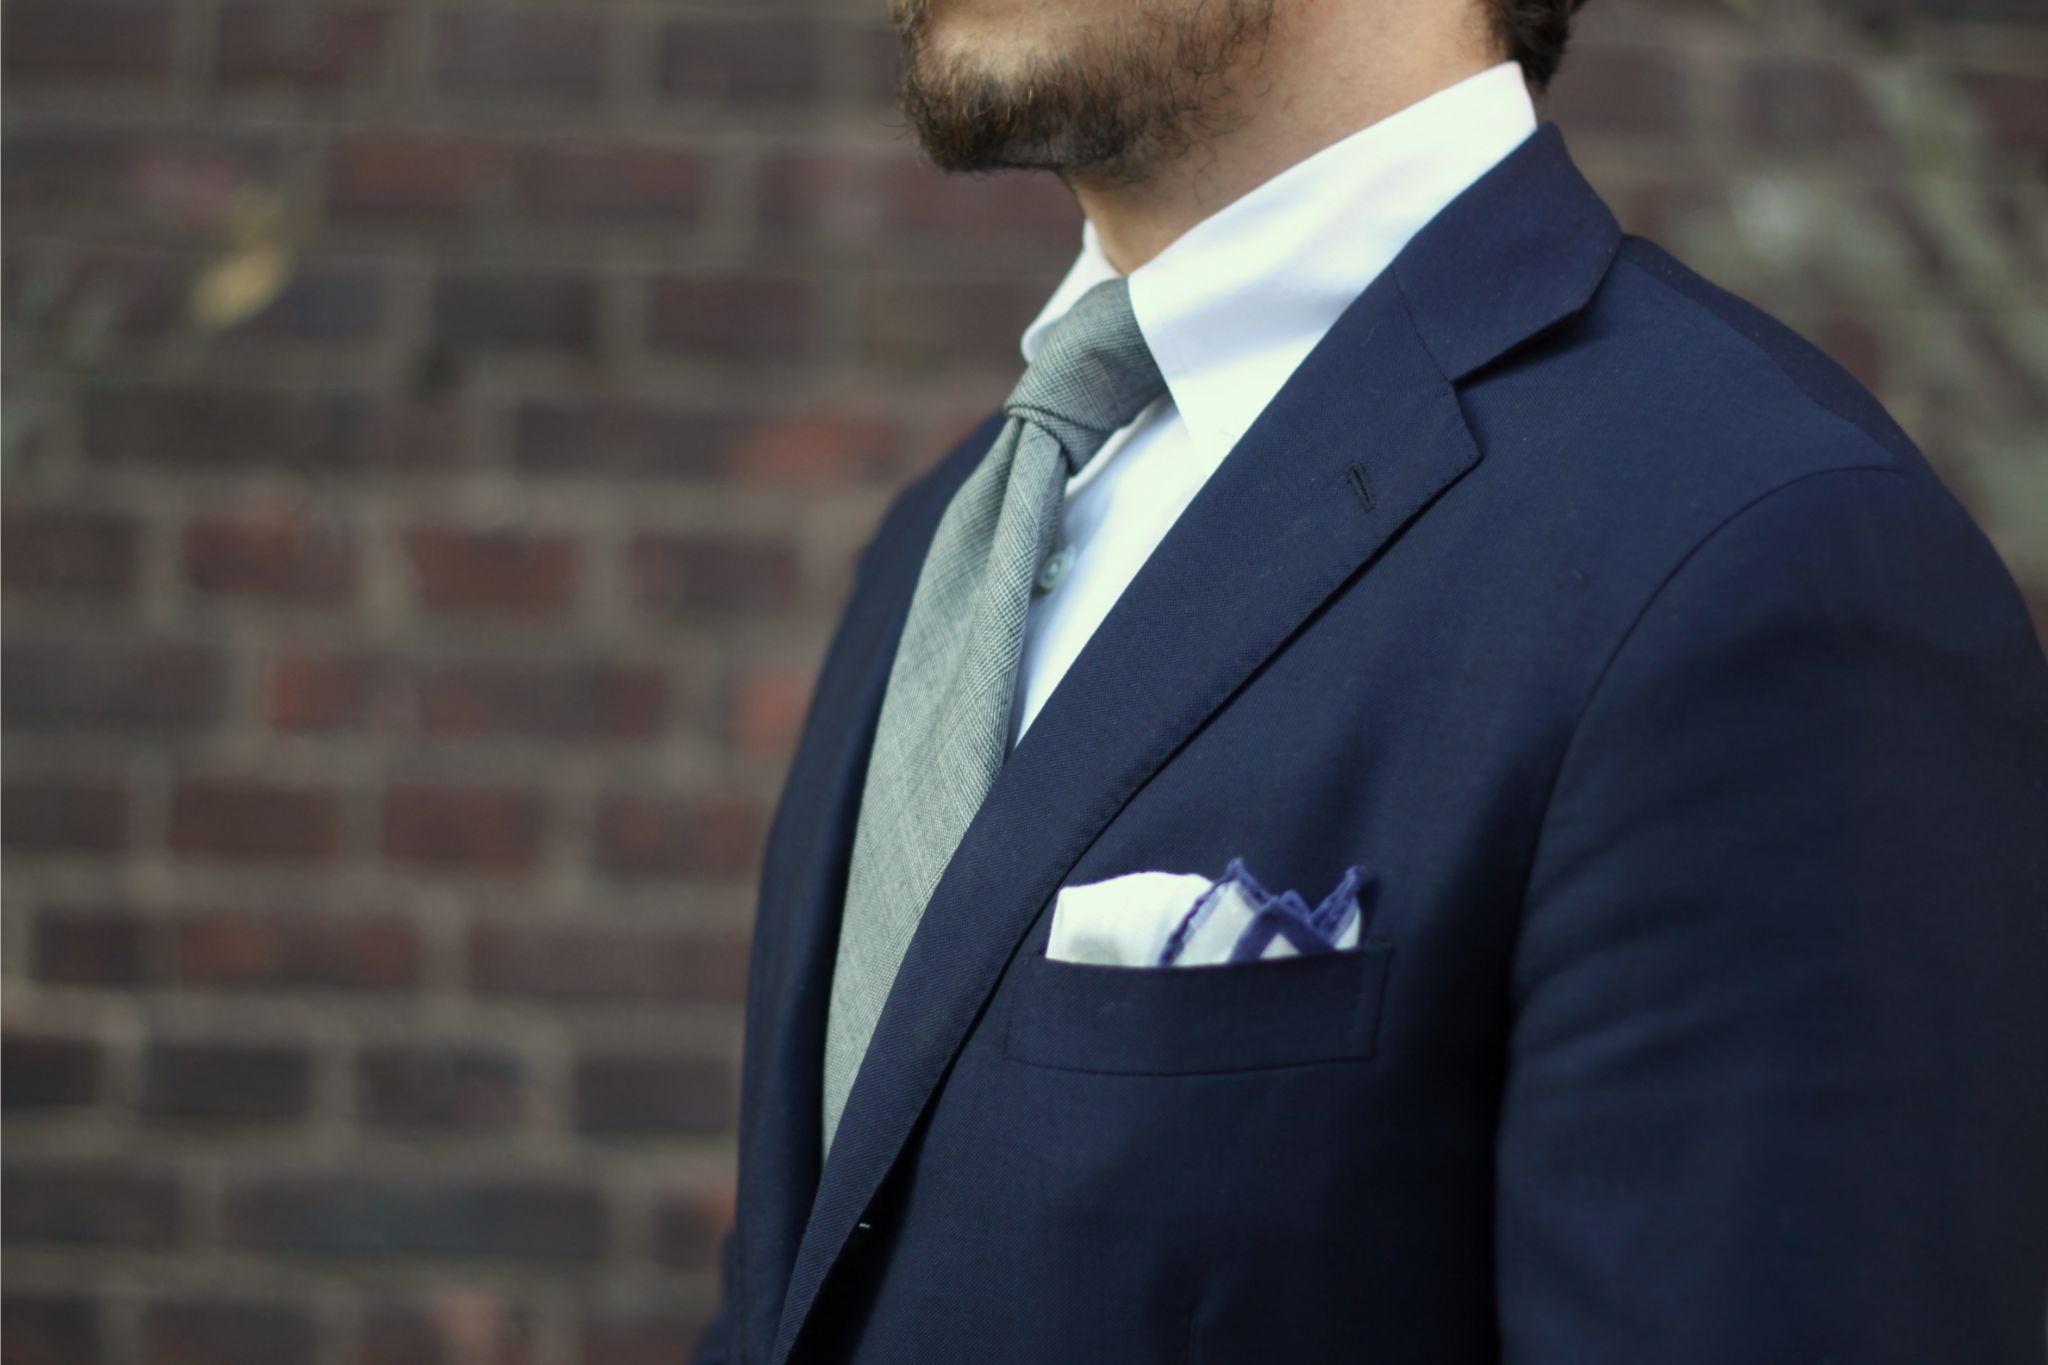 Dark blue suit for business casual - Suit with button-down collar shirt and gray wool tie